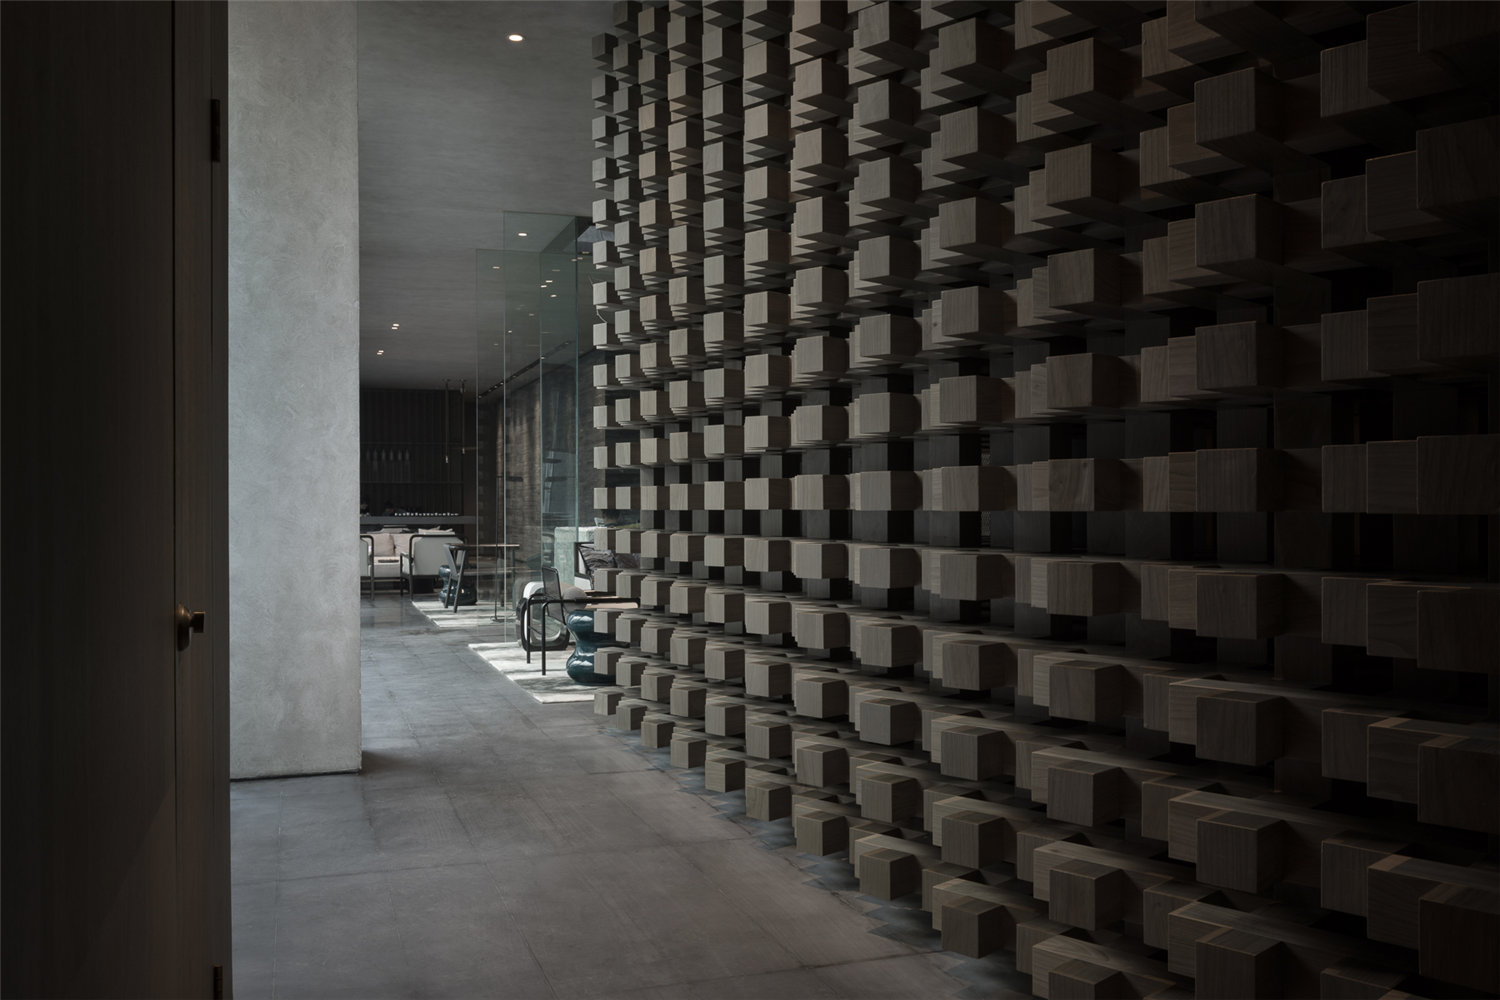 Different sizes of stones are used to made the walls A. GUANG